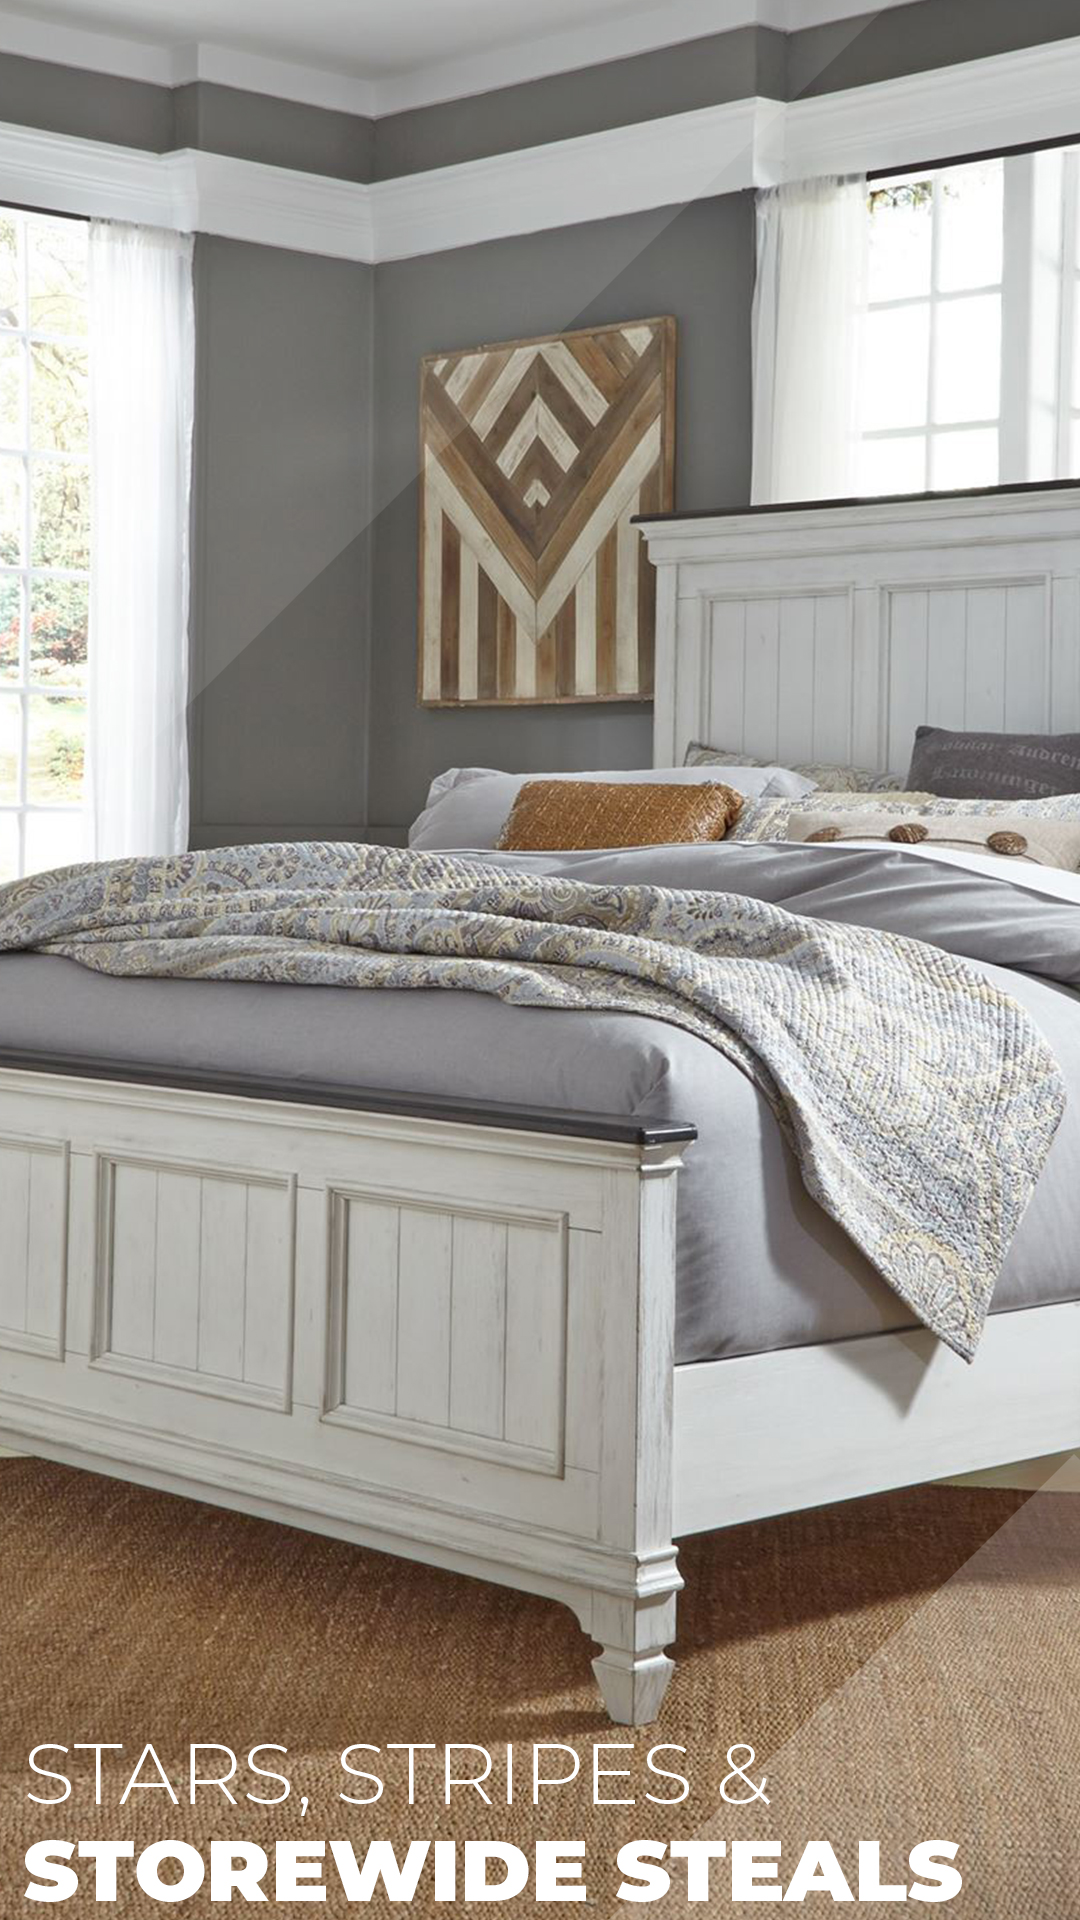 Sofas & More President's Day Furniture Sale - Sleep Store